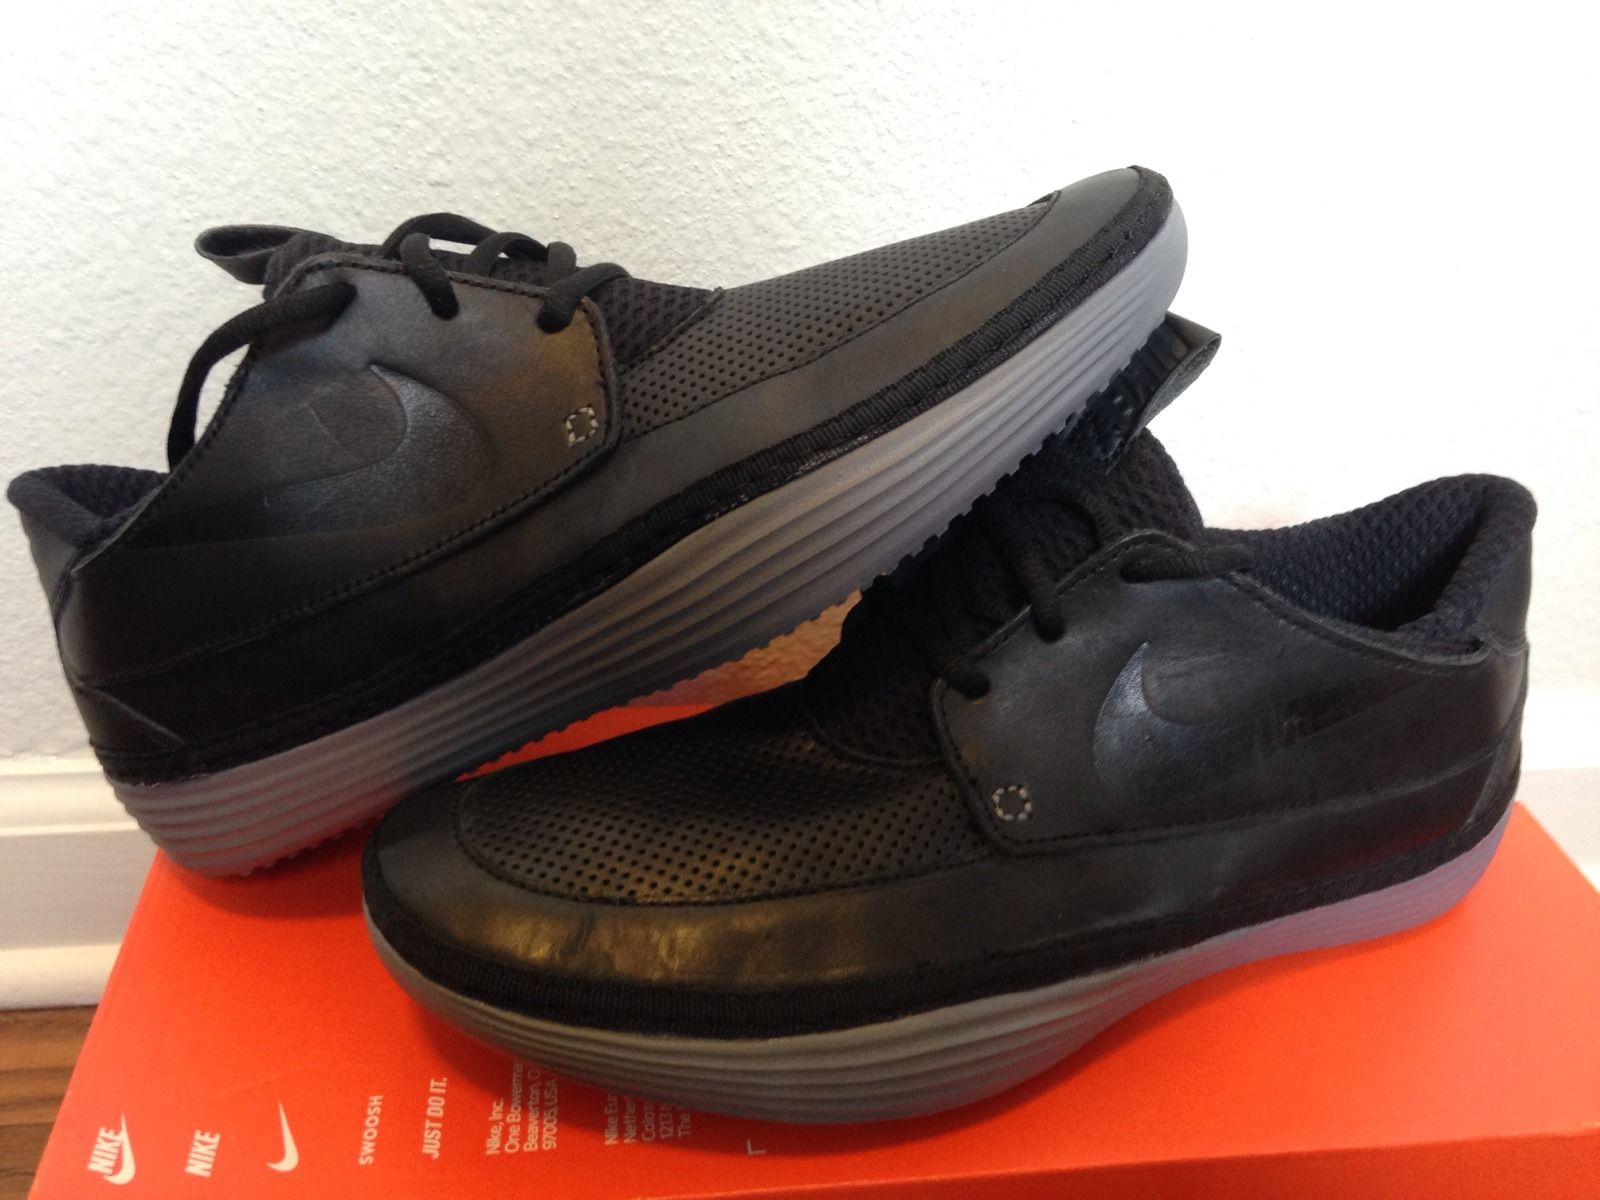 the latest e13d3 d6c44 Nike Solarsoft Moccasin - Black Leather Sample - SneakerNews.com